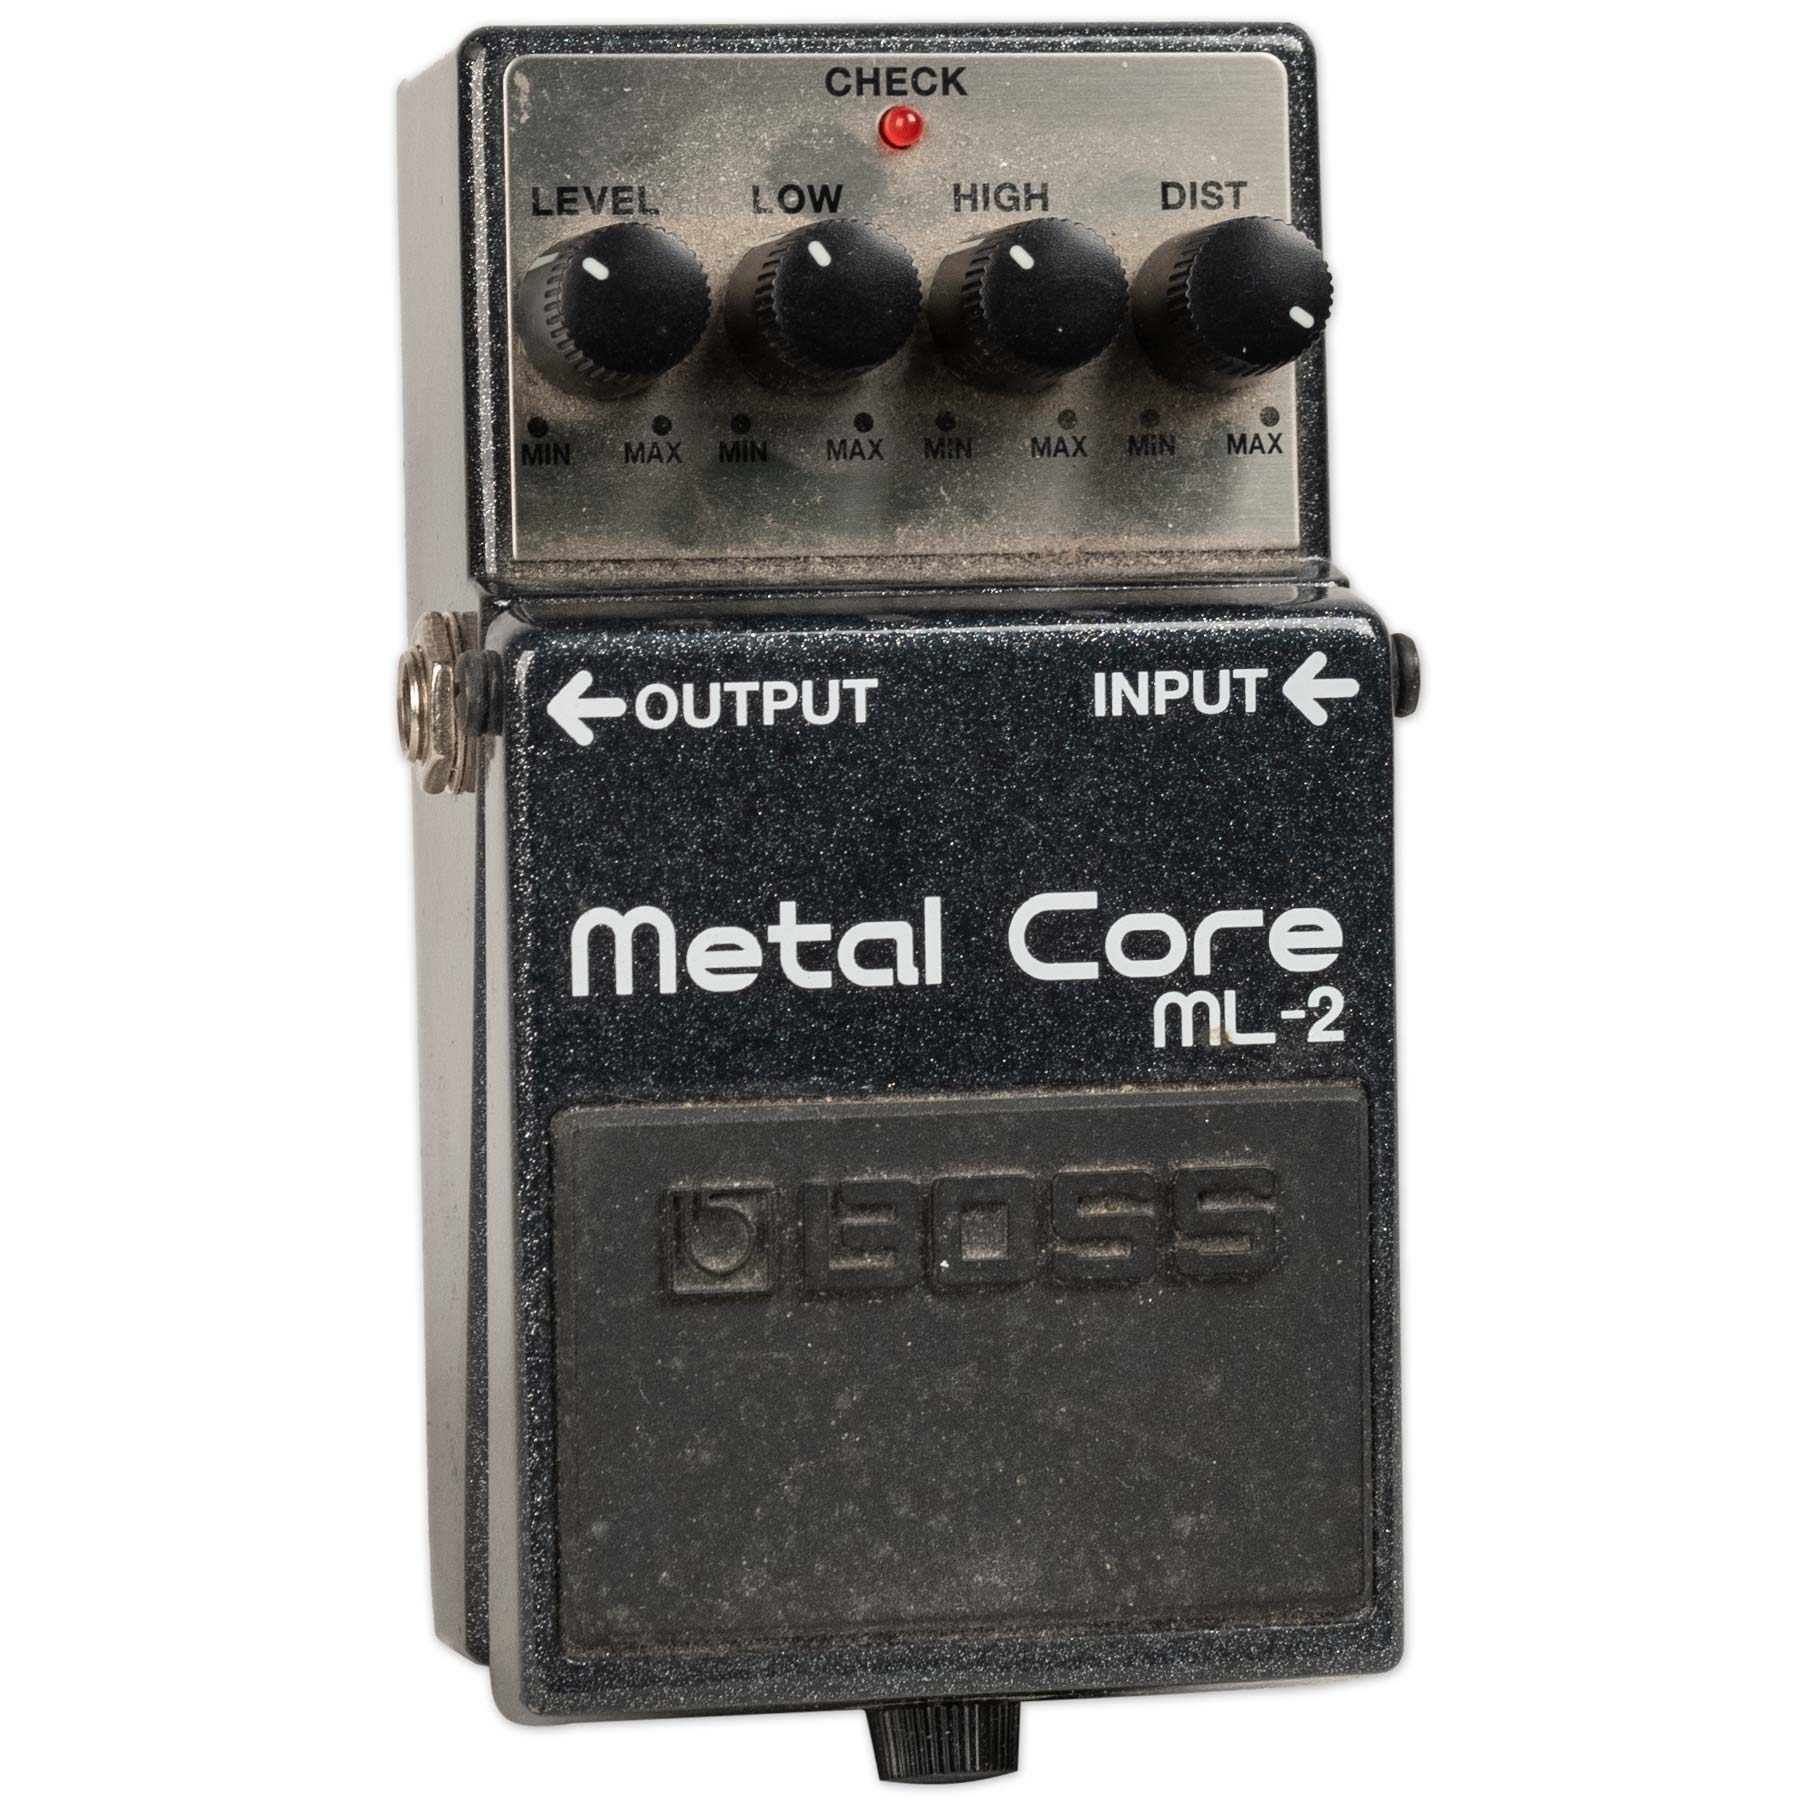 USED BOSS ML-2 METAL CORE